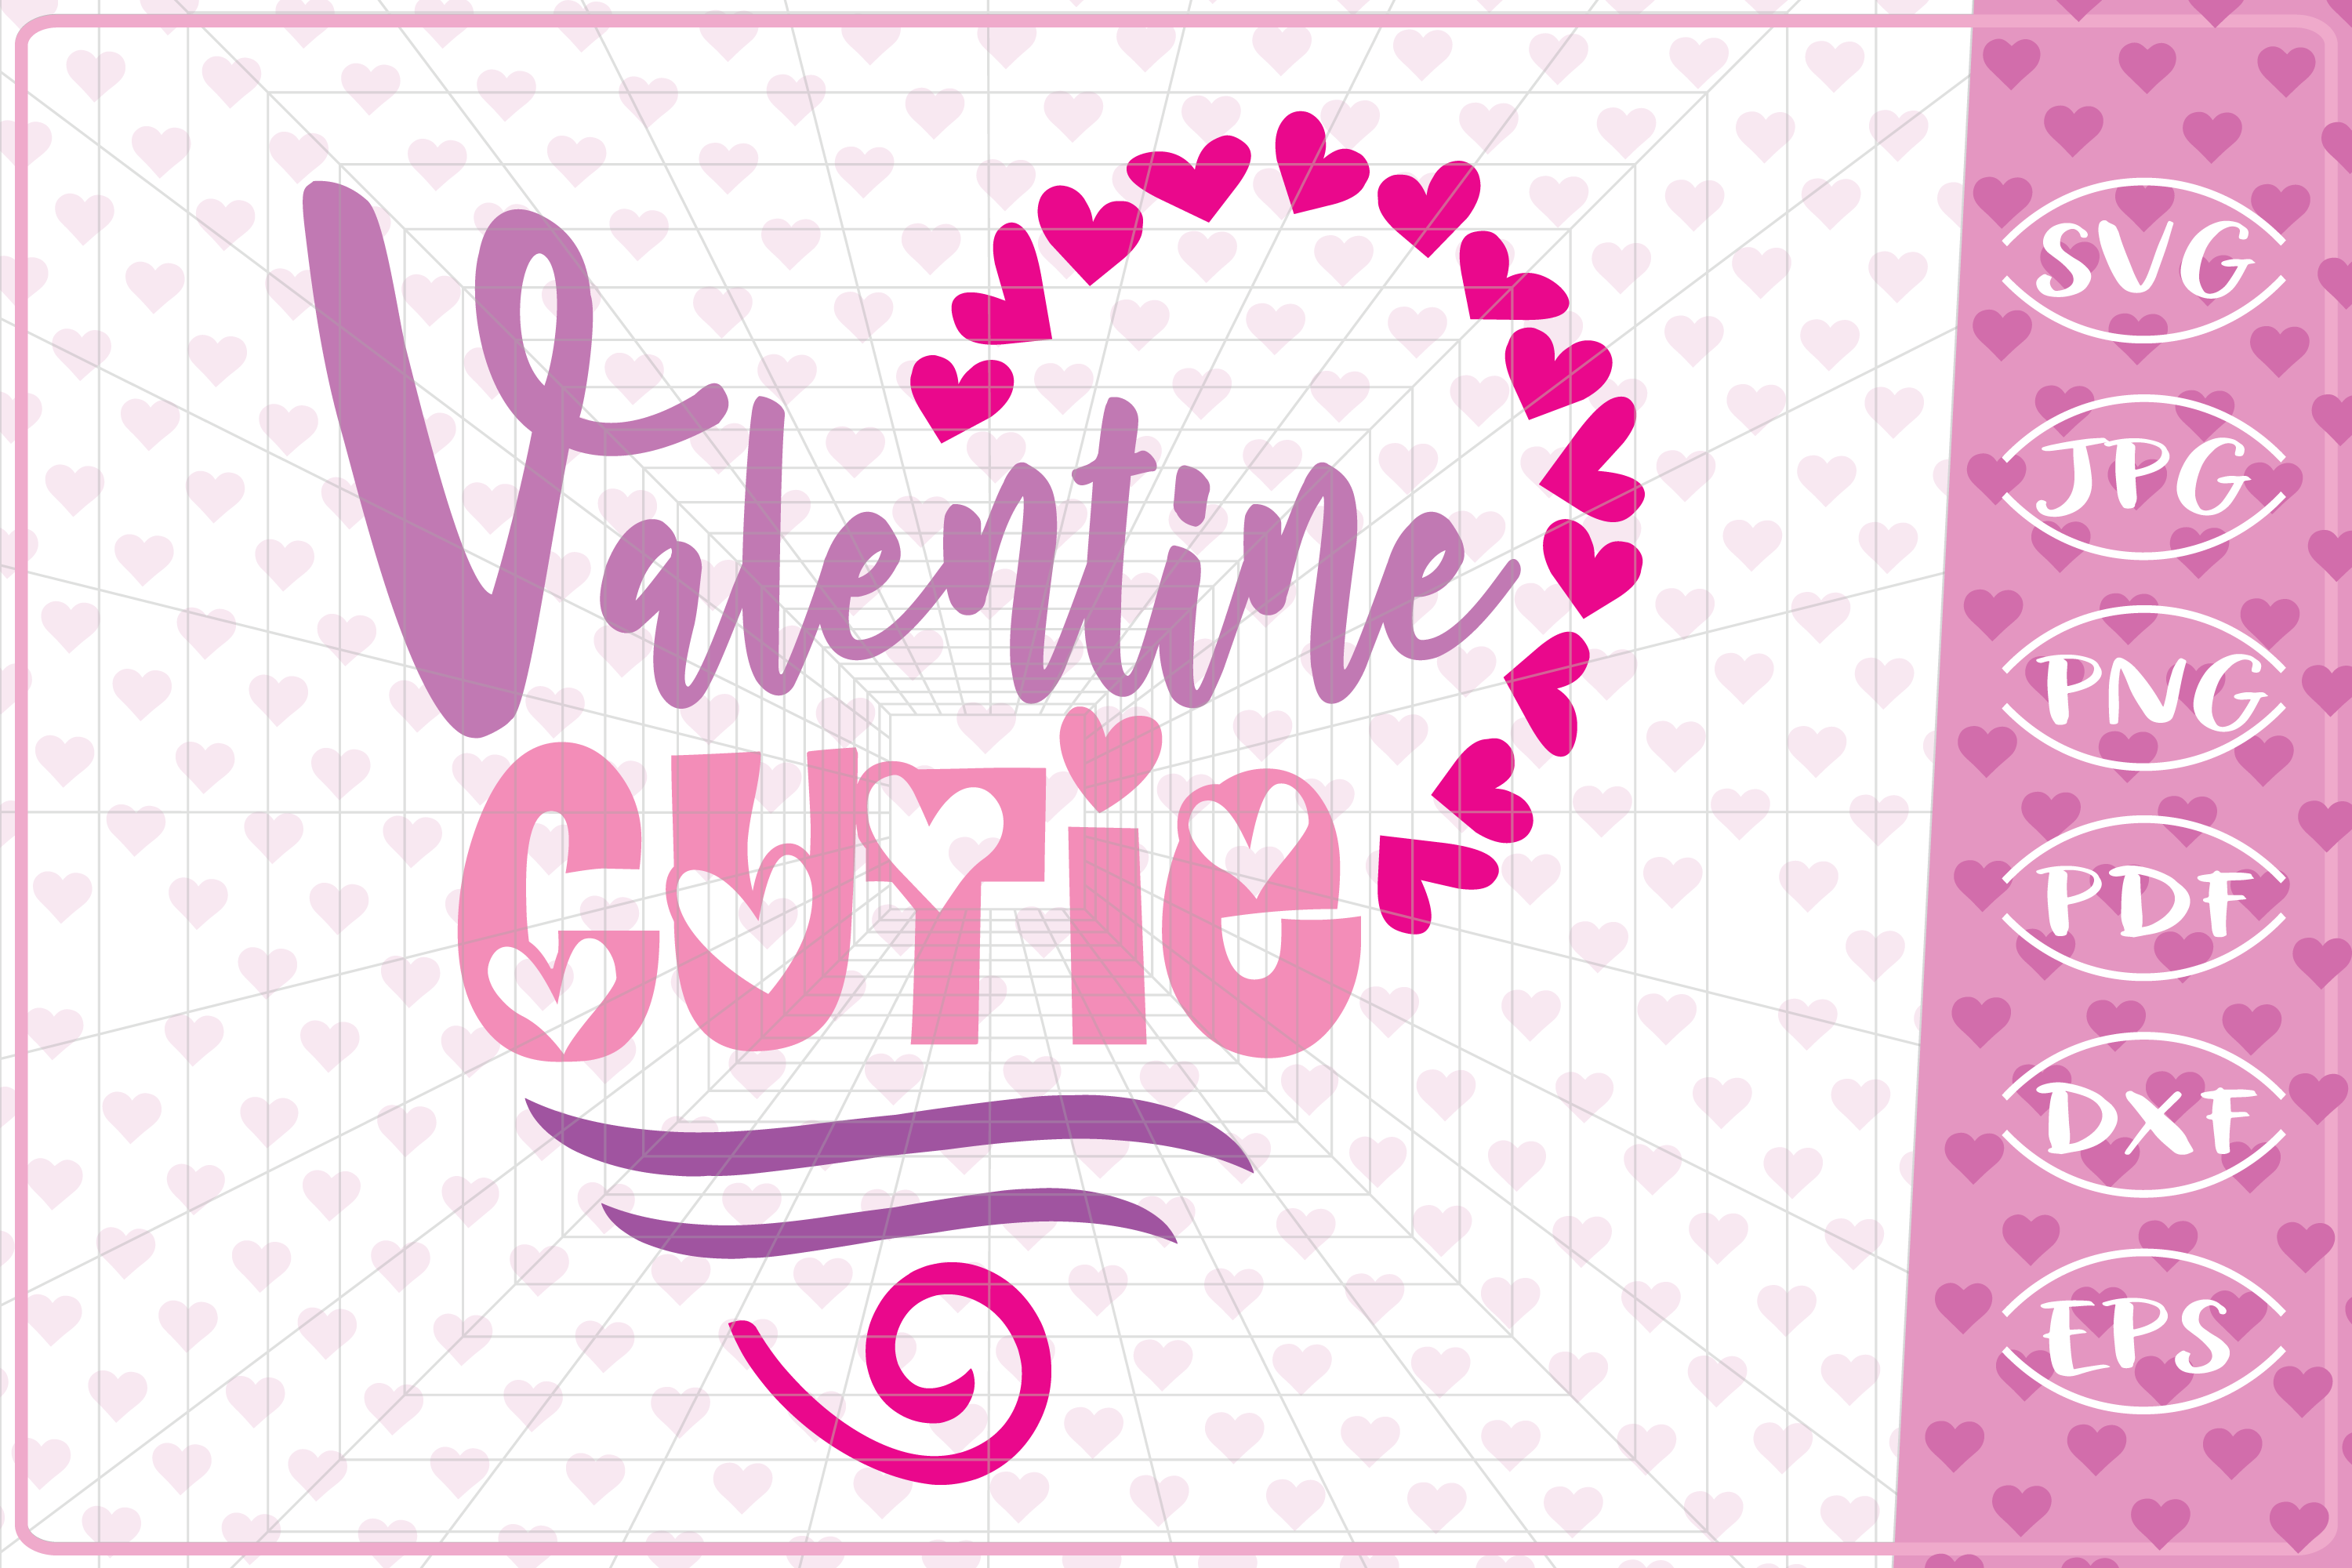 Download Free Valentine Cutie Graphic By Cute Graphic Creative Fabrica for Cricut Explore, Silhouette and other cutting machines.